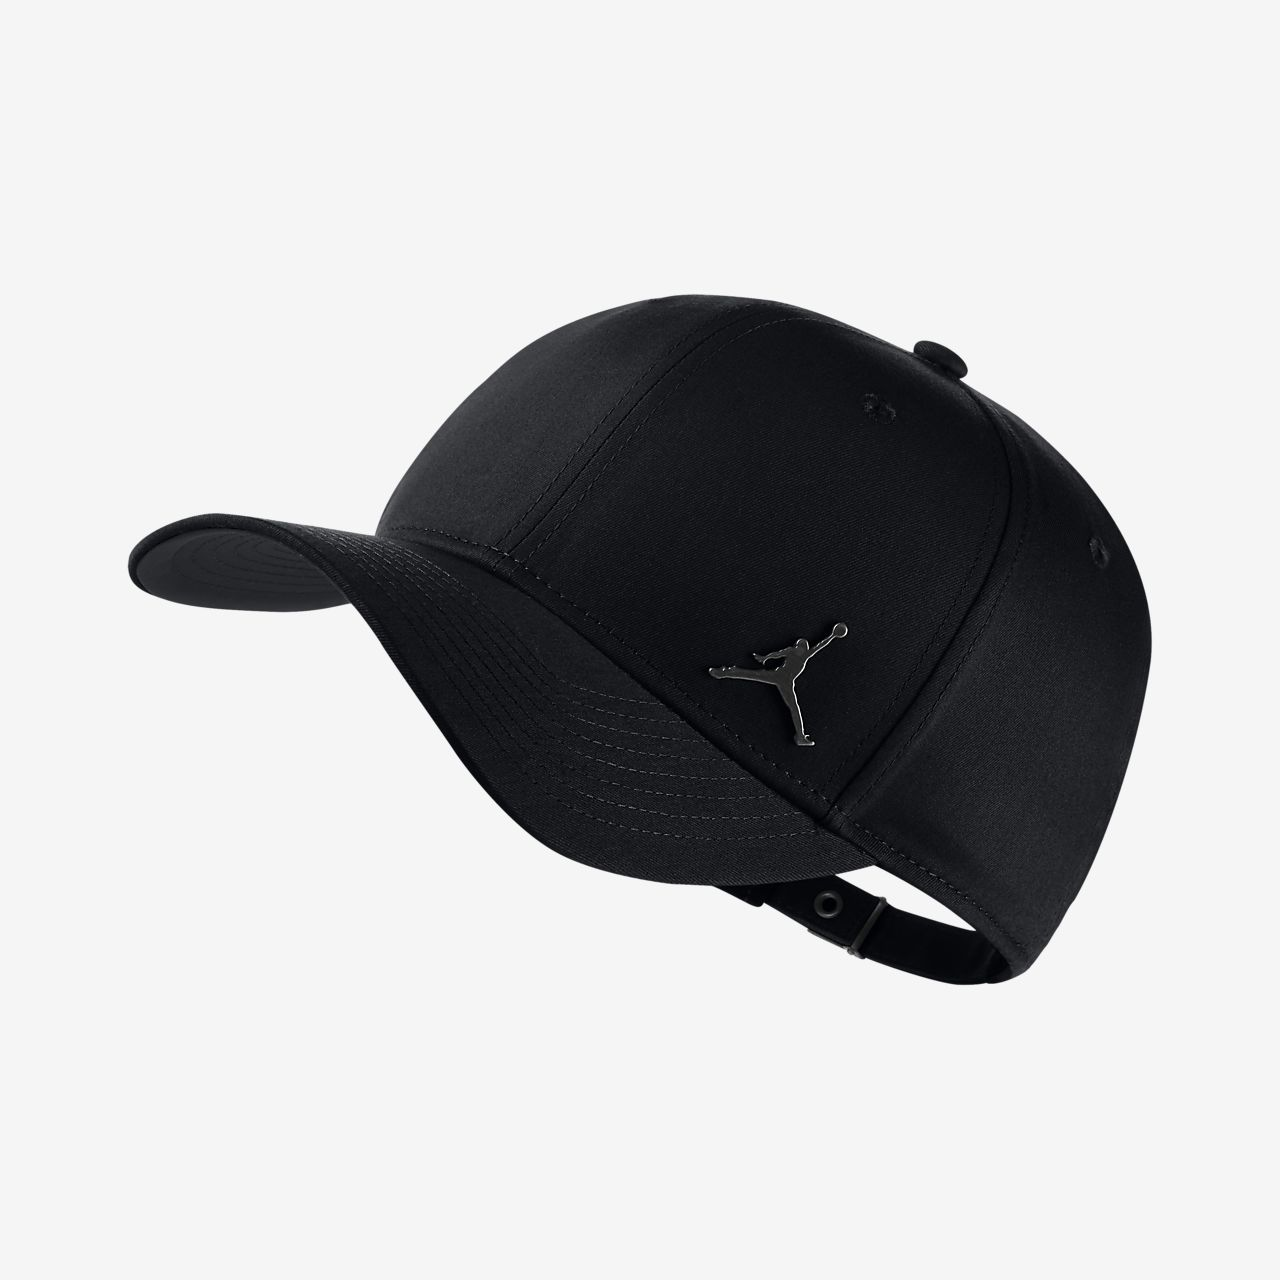 76f9507a507 Jordan Classic99 Metal Jumpman Adjustable Hat. Nike.com SA